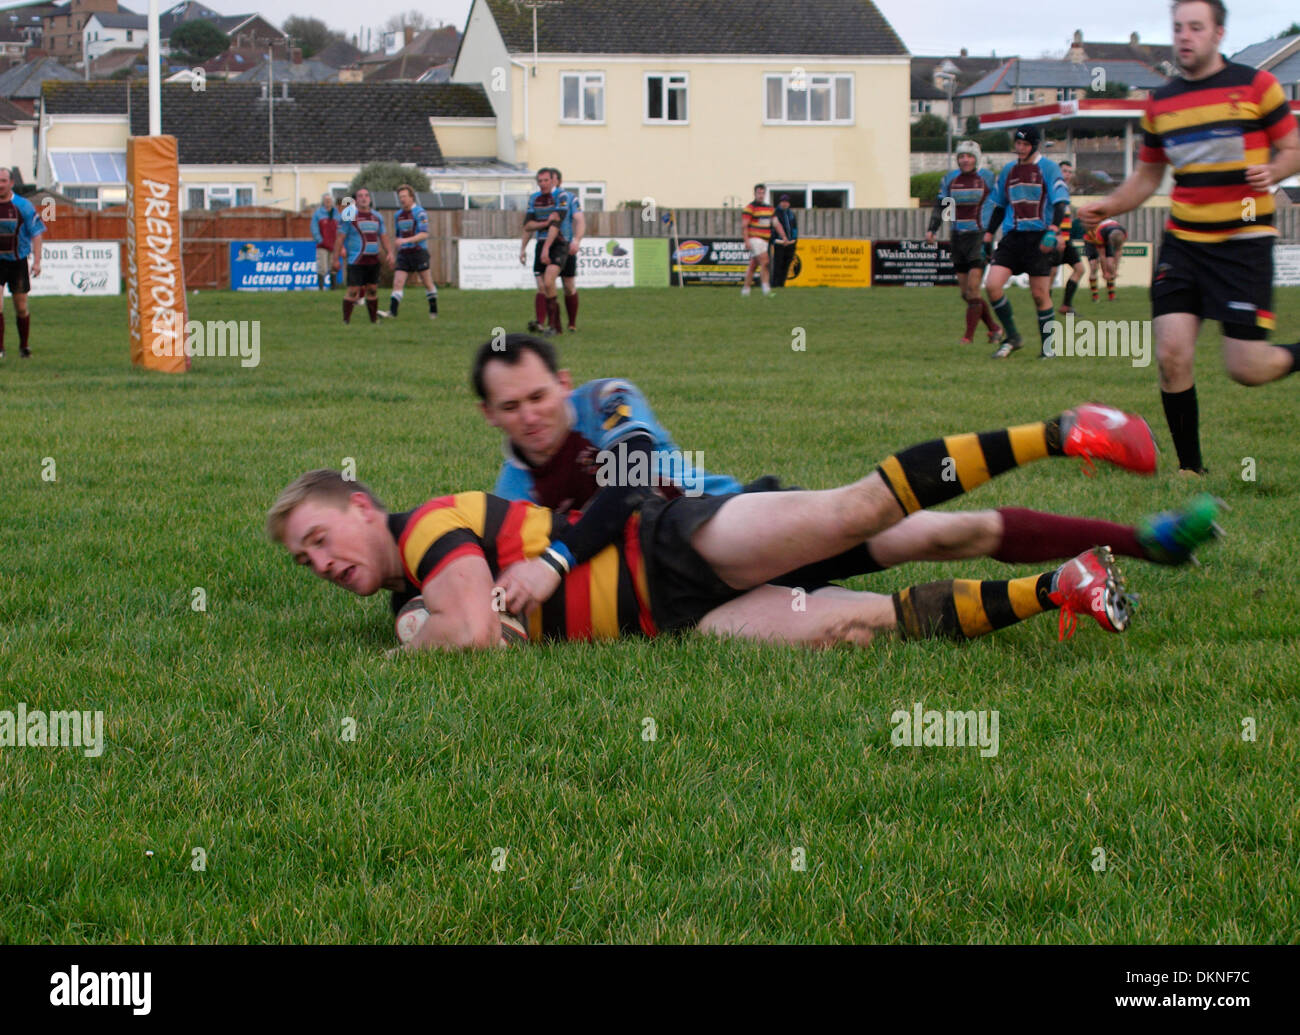 Scoring a try, Amateur rugby match, Bude, Cornwall, UK - Stock Image